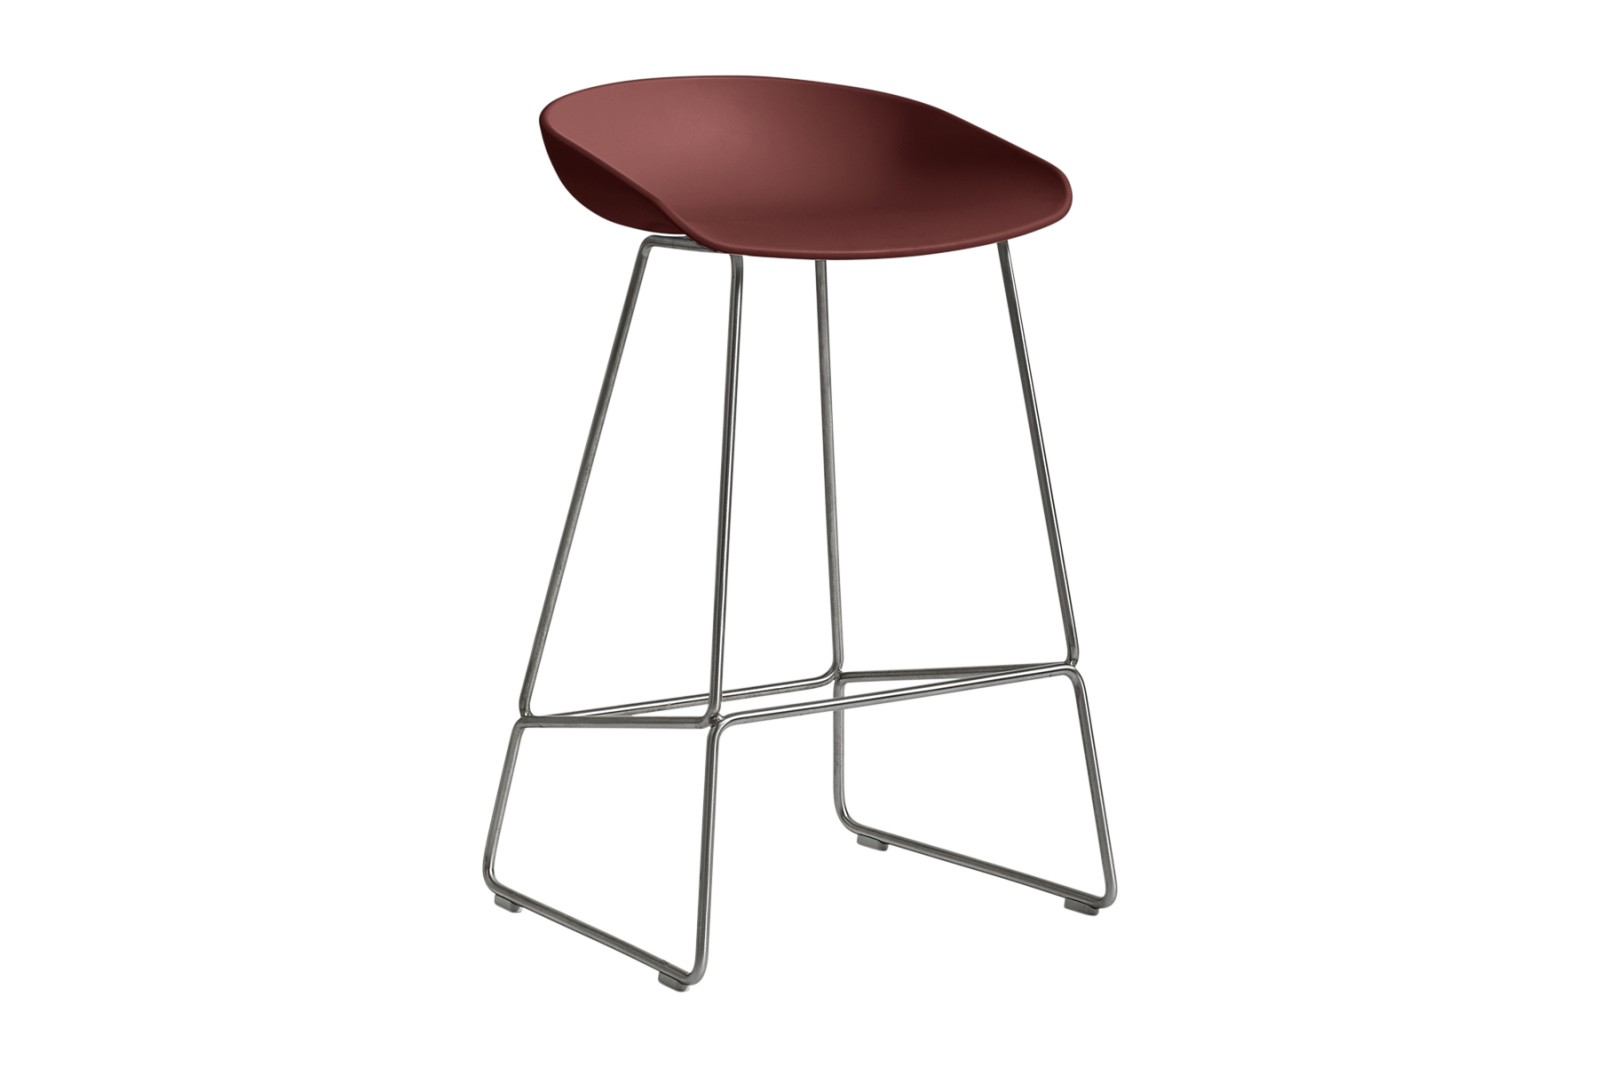 About A Stool AAS38 Brick Seat and Stainless Steel Base, Low